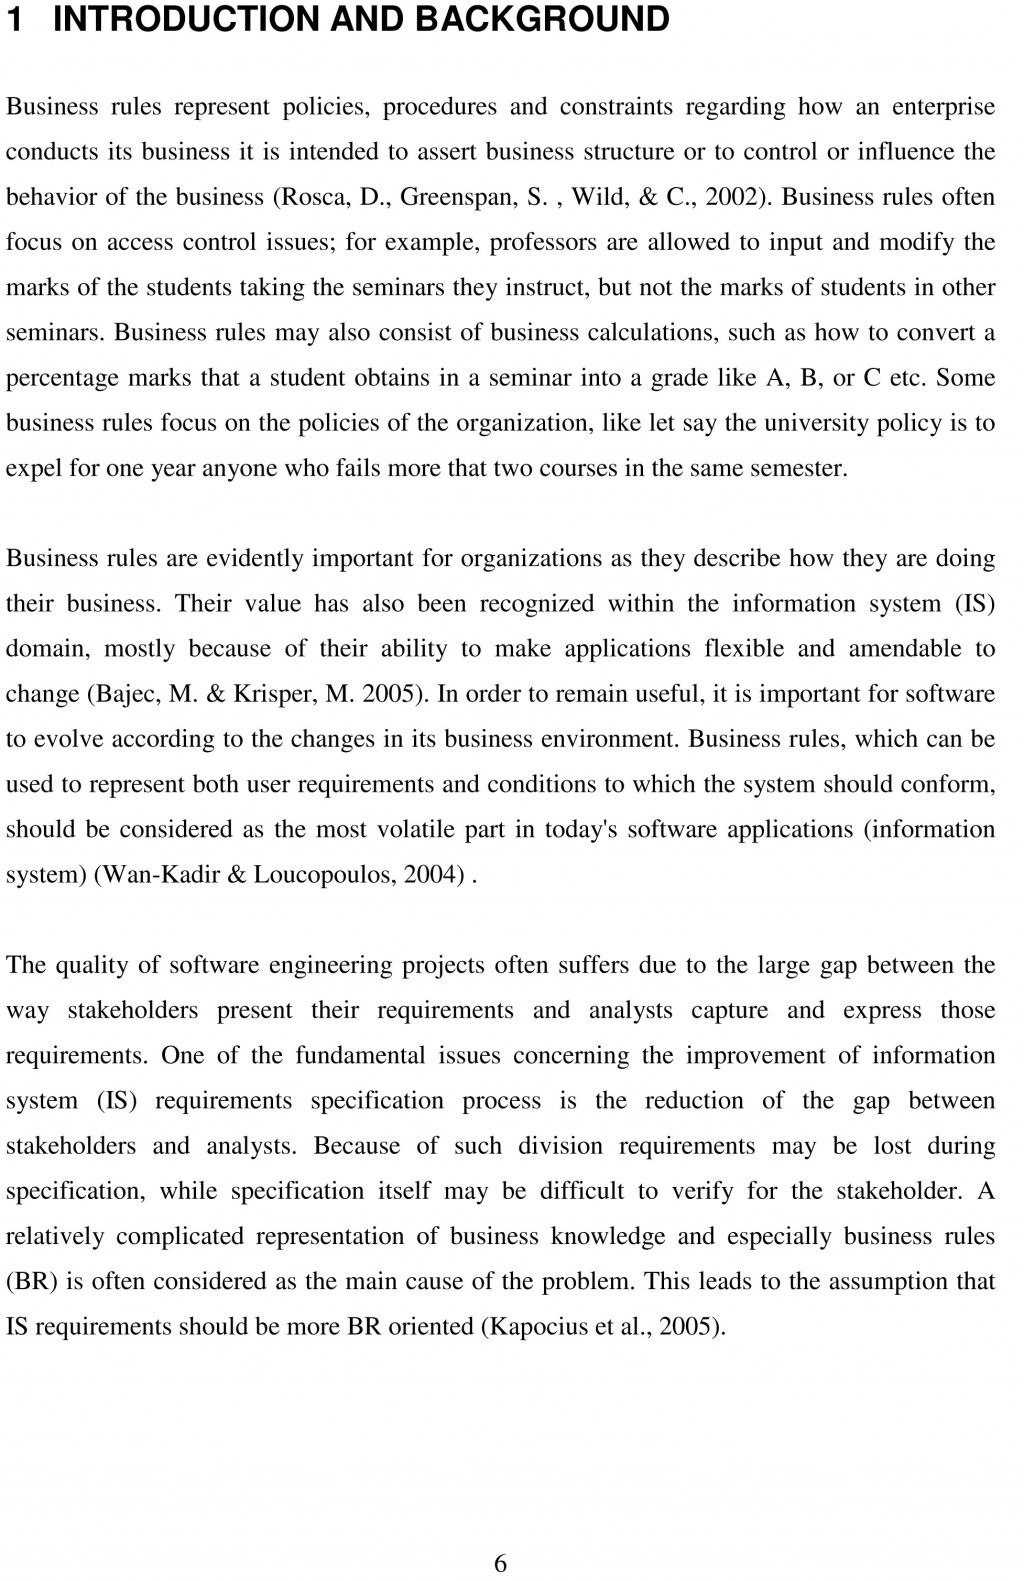 009 Essay Writer Free Quality Thesis Sample Amazing App Generator Software Download Large